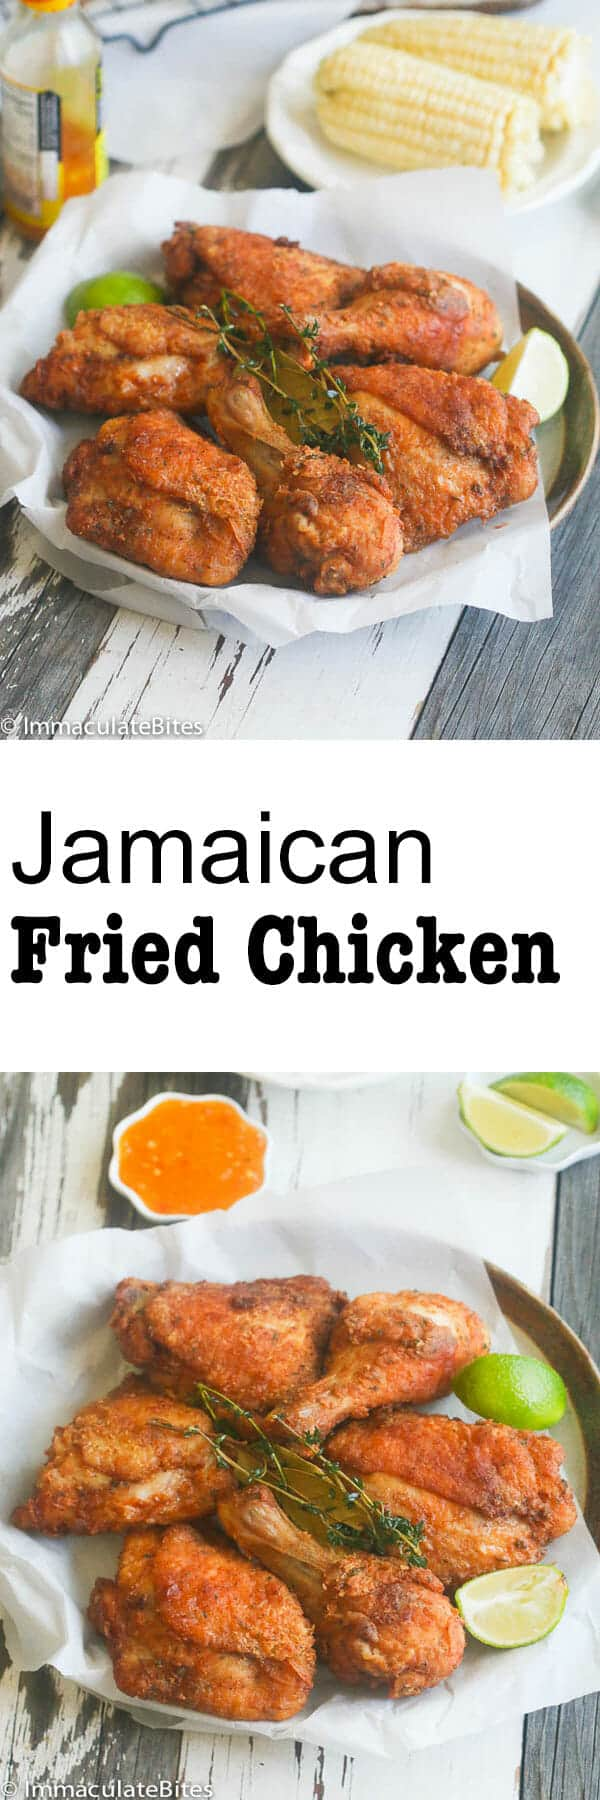 jamaican-fried-chicken